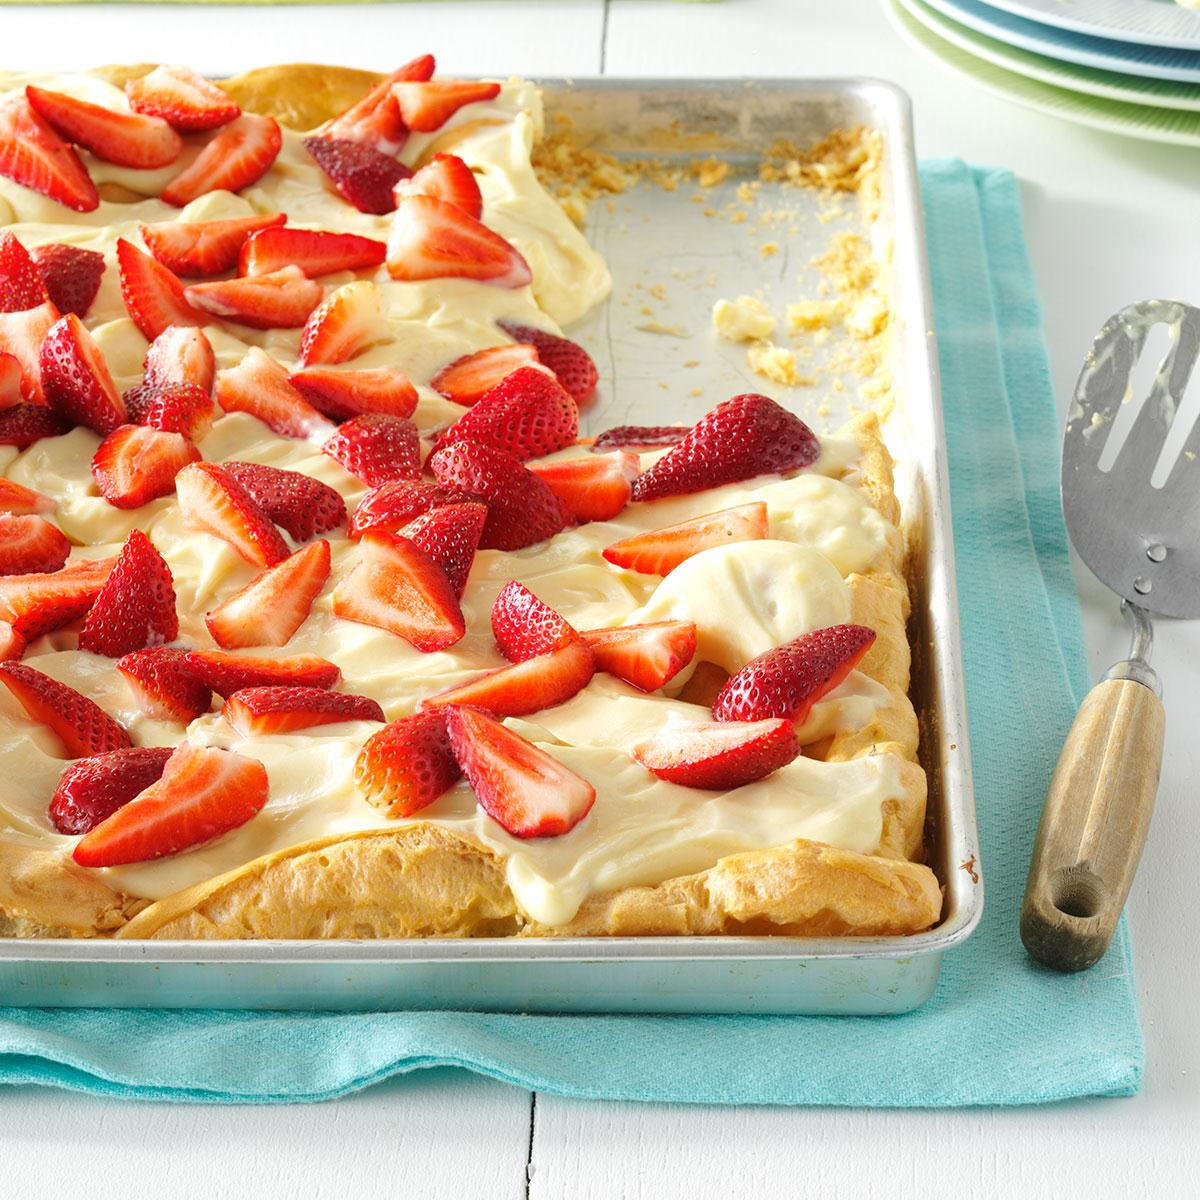 Need to bring a dish to pass this weekend? This make-ahead layered dessert will disappear quickly at get-togethers. Recipe for Strawberry Pretzel.